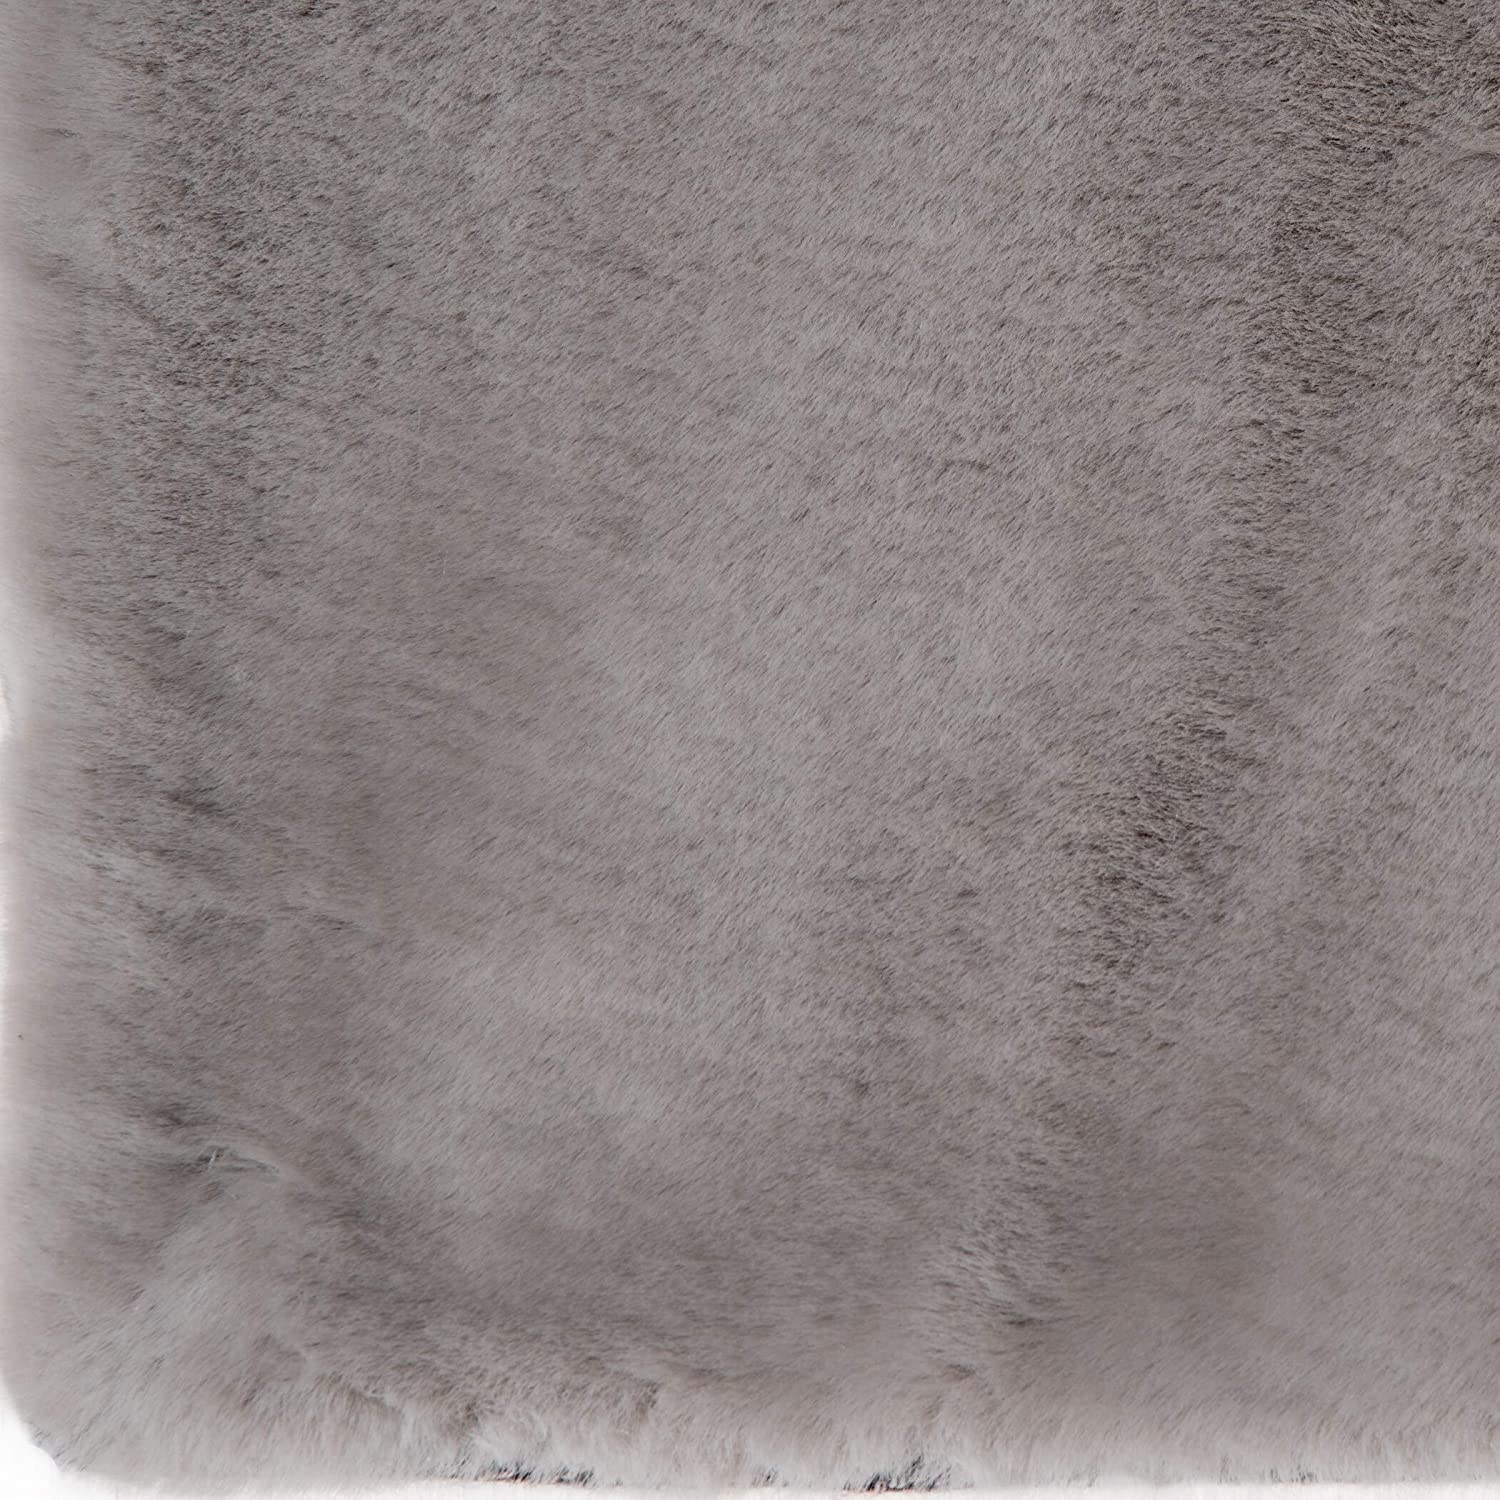 MISC Cloud Grey Faux Fur Area Rug 5' X 7' Solid Shag Polyester Contains Latex Stain Resistant